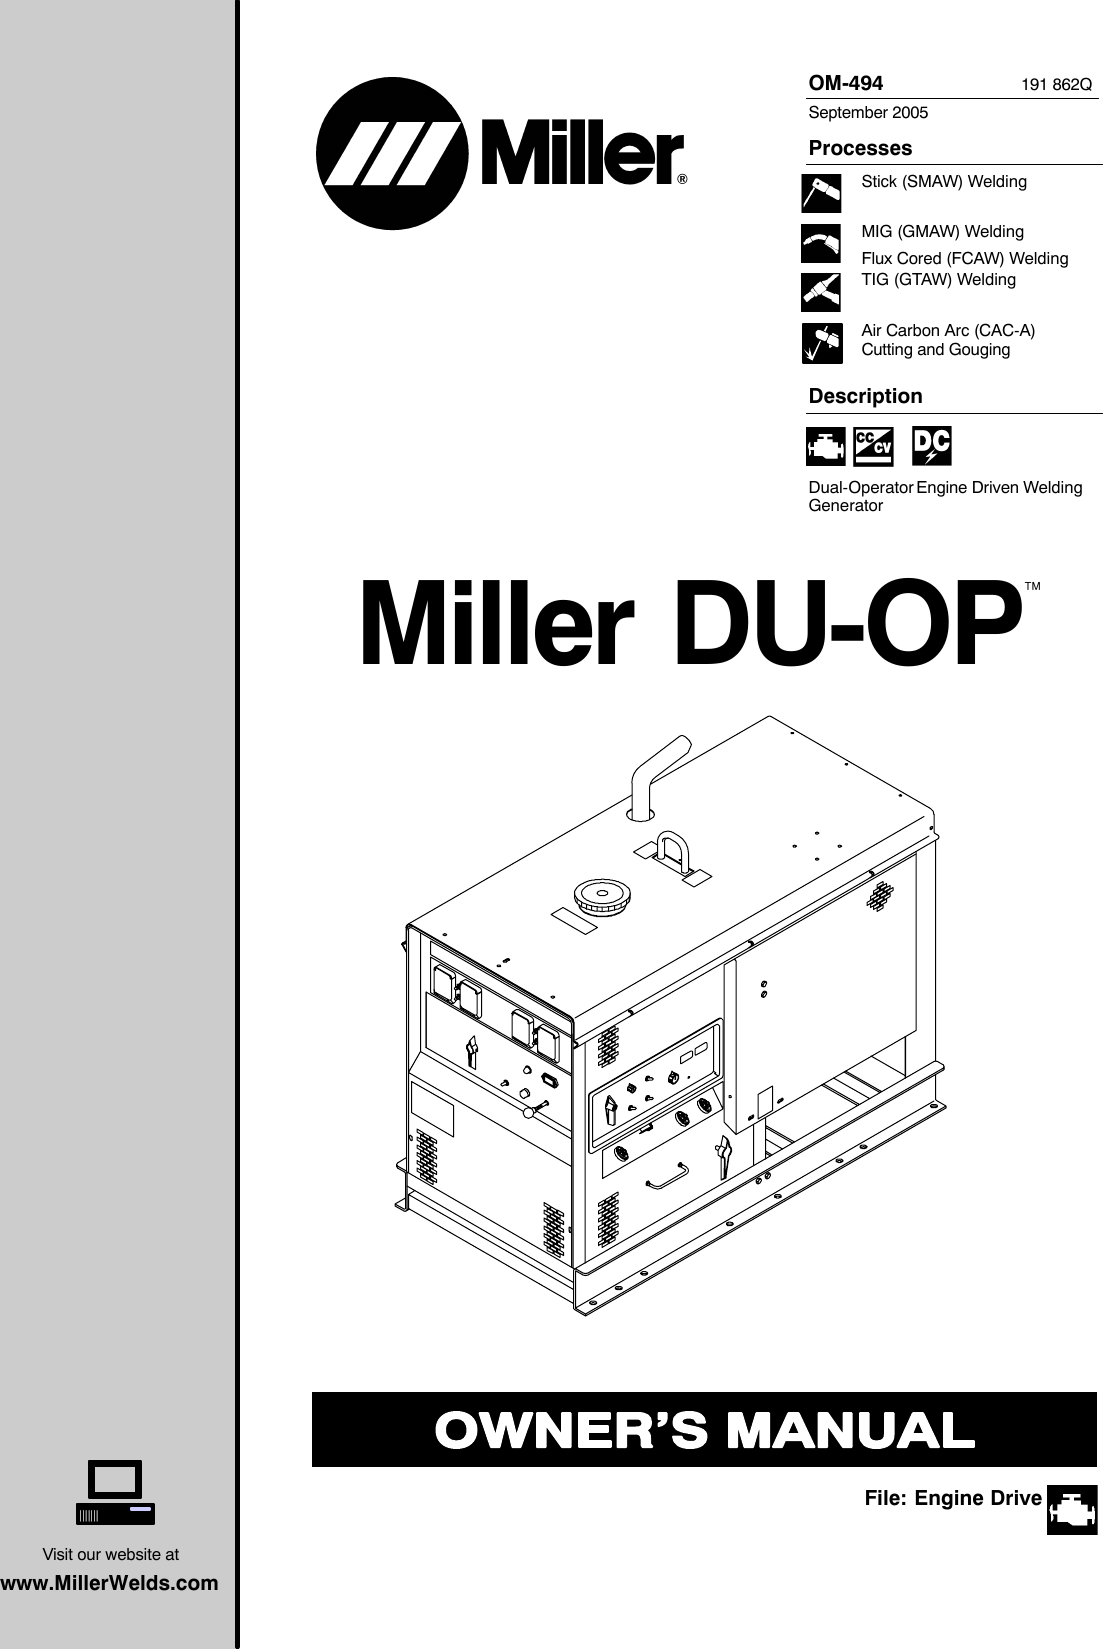 Miller Electric Du Op Users Manual O494q_mil(ECO3539)